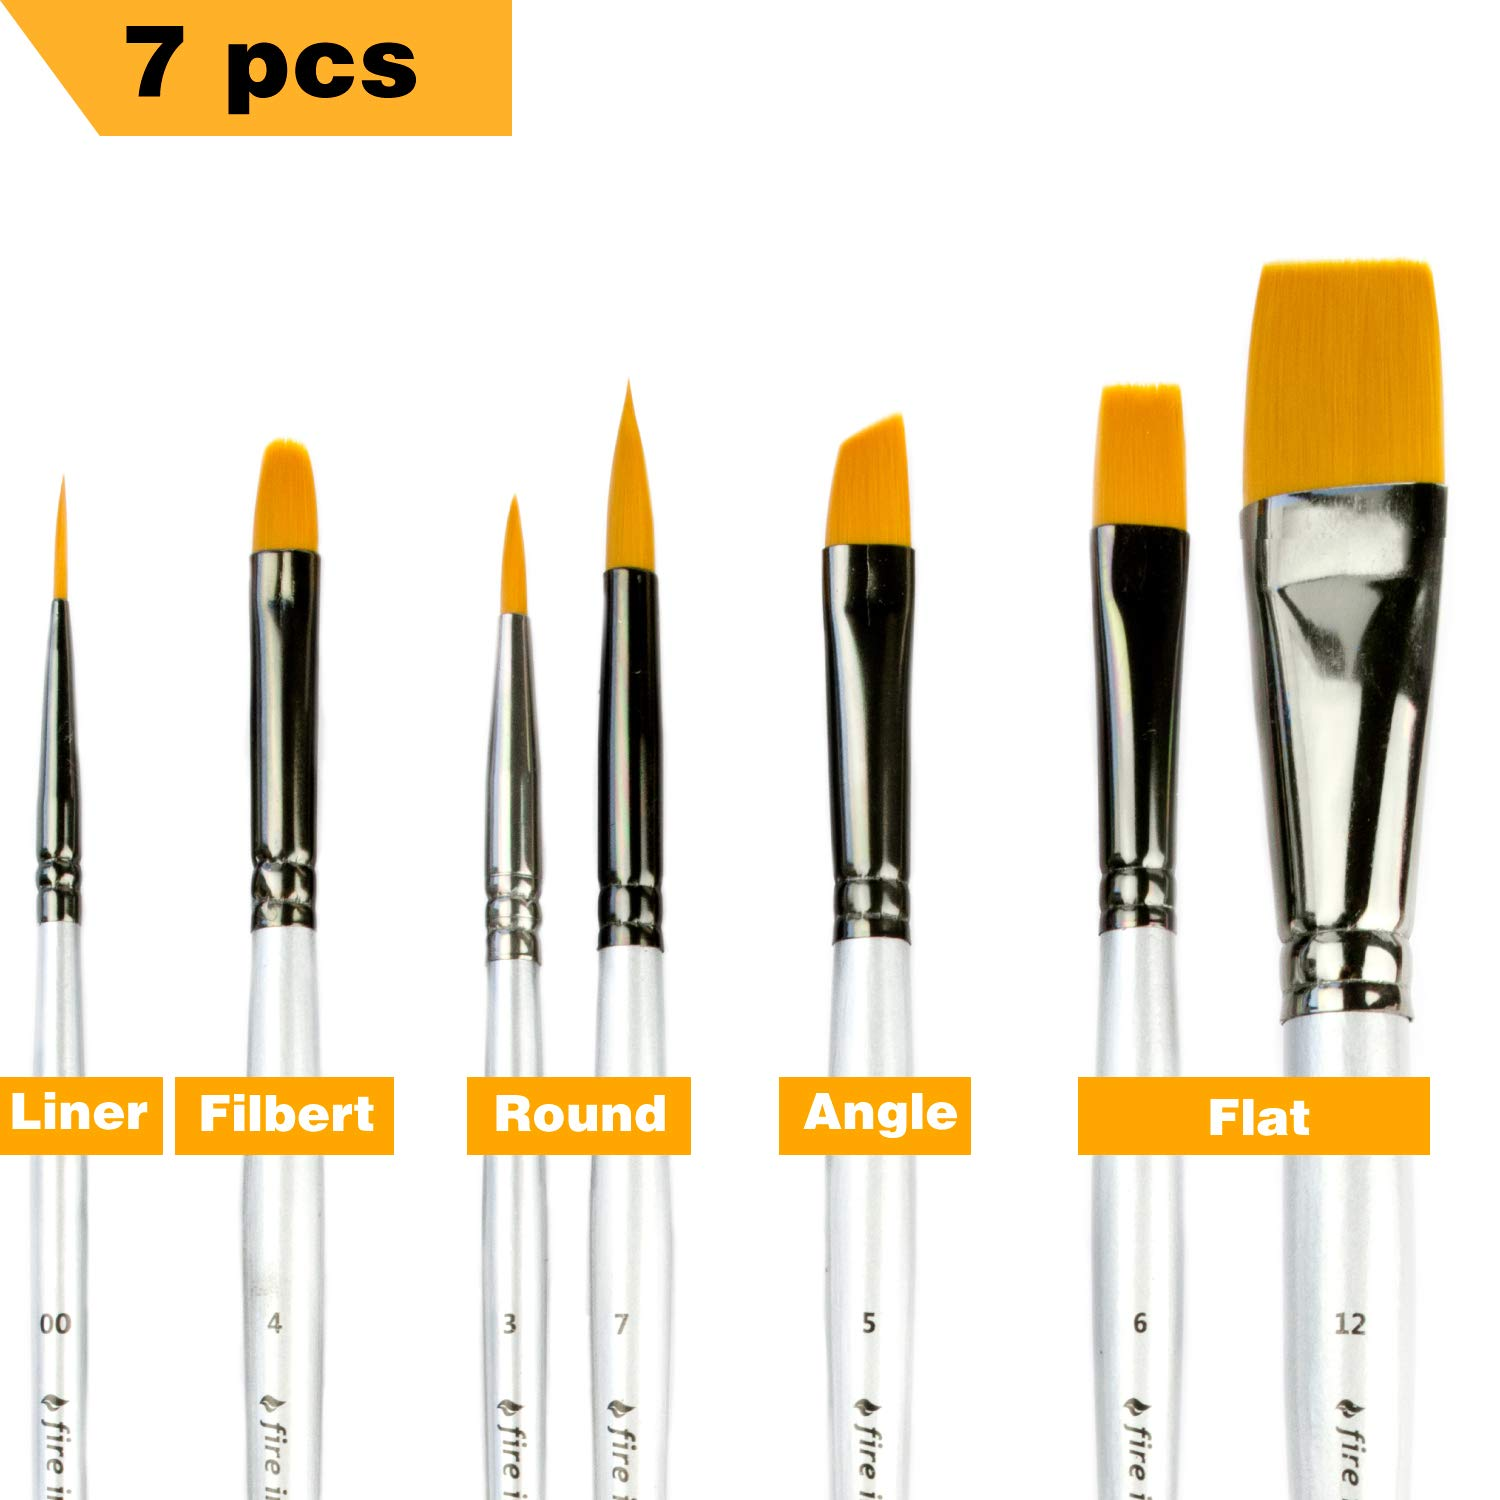 Artist Paint Brushes for Acrylic Painting Watercolor Oil - Body and Face Paint Brushes. Best Art Supplies Painting Brush Set of 7 pcs for Adults and Kids